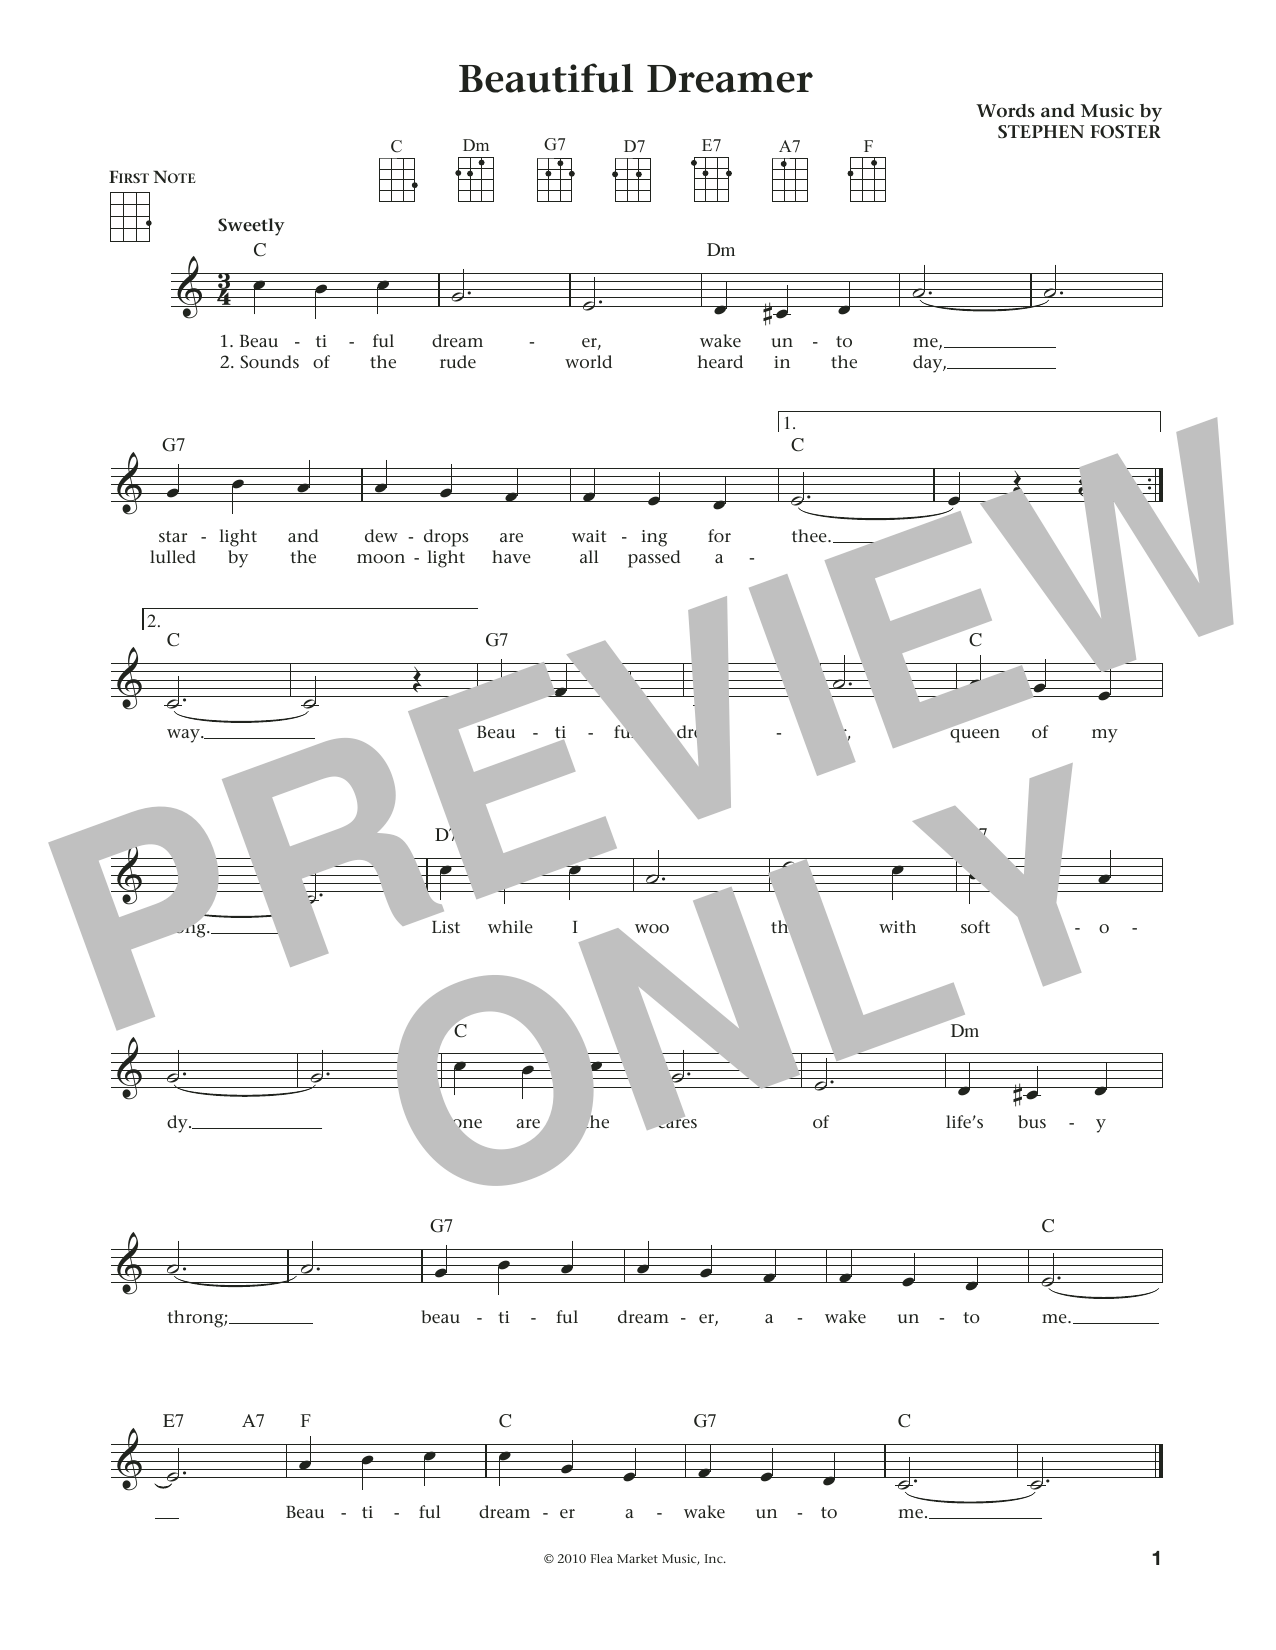 Stephen C. Foster Beautiful Dreamer (from The Daily Ukulele) (arr. Liz and Jim Beloff) sheet music notes and chords